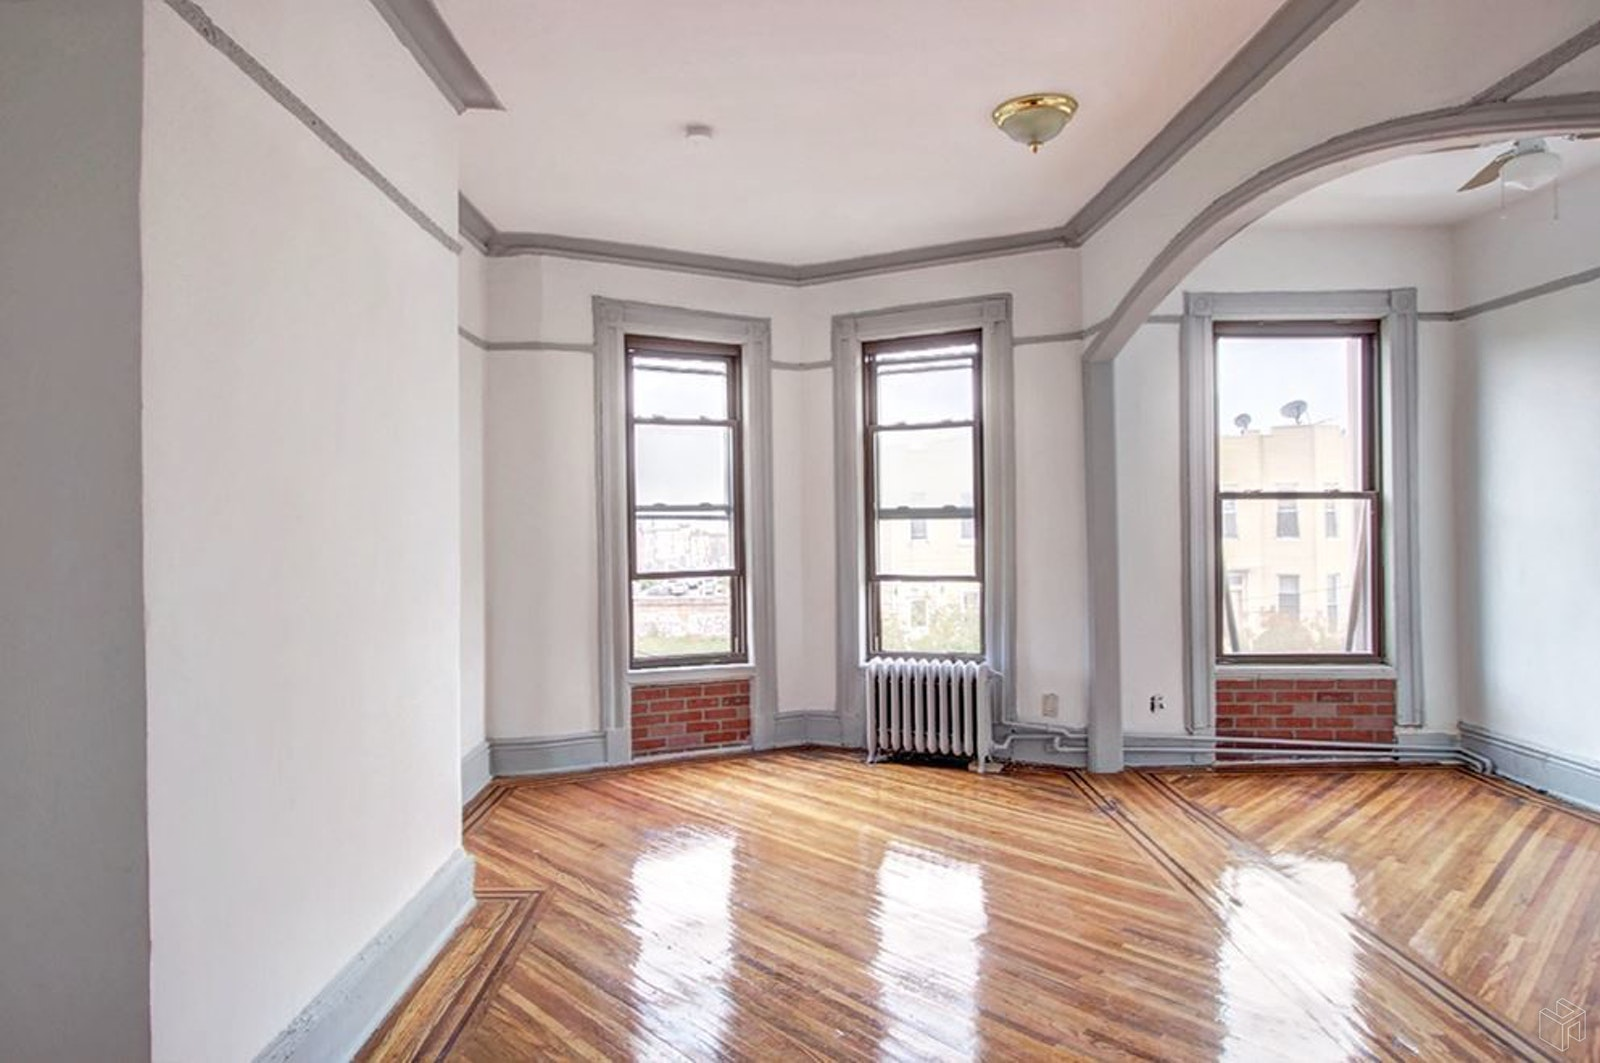 2058 A Pacific Street Garden, Crown Heights, Brooklyn, NY, 11233, $2,600, Property For Rent, ID# 18532858, Halstead